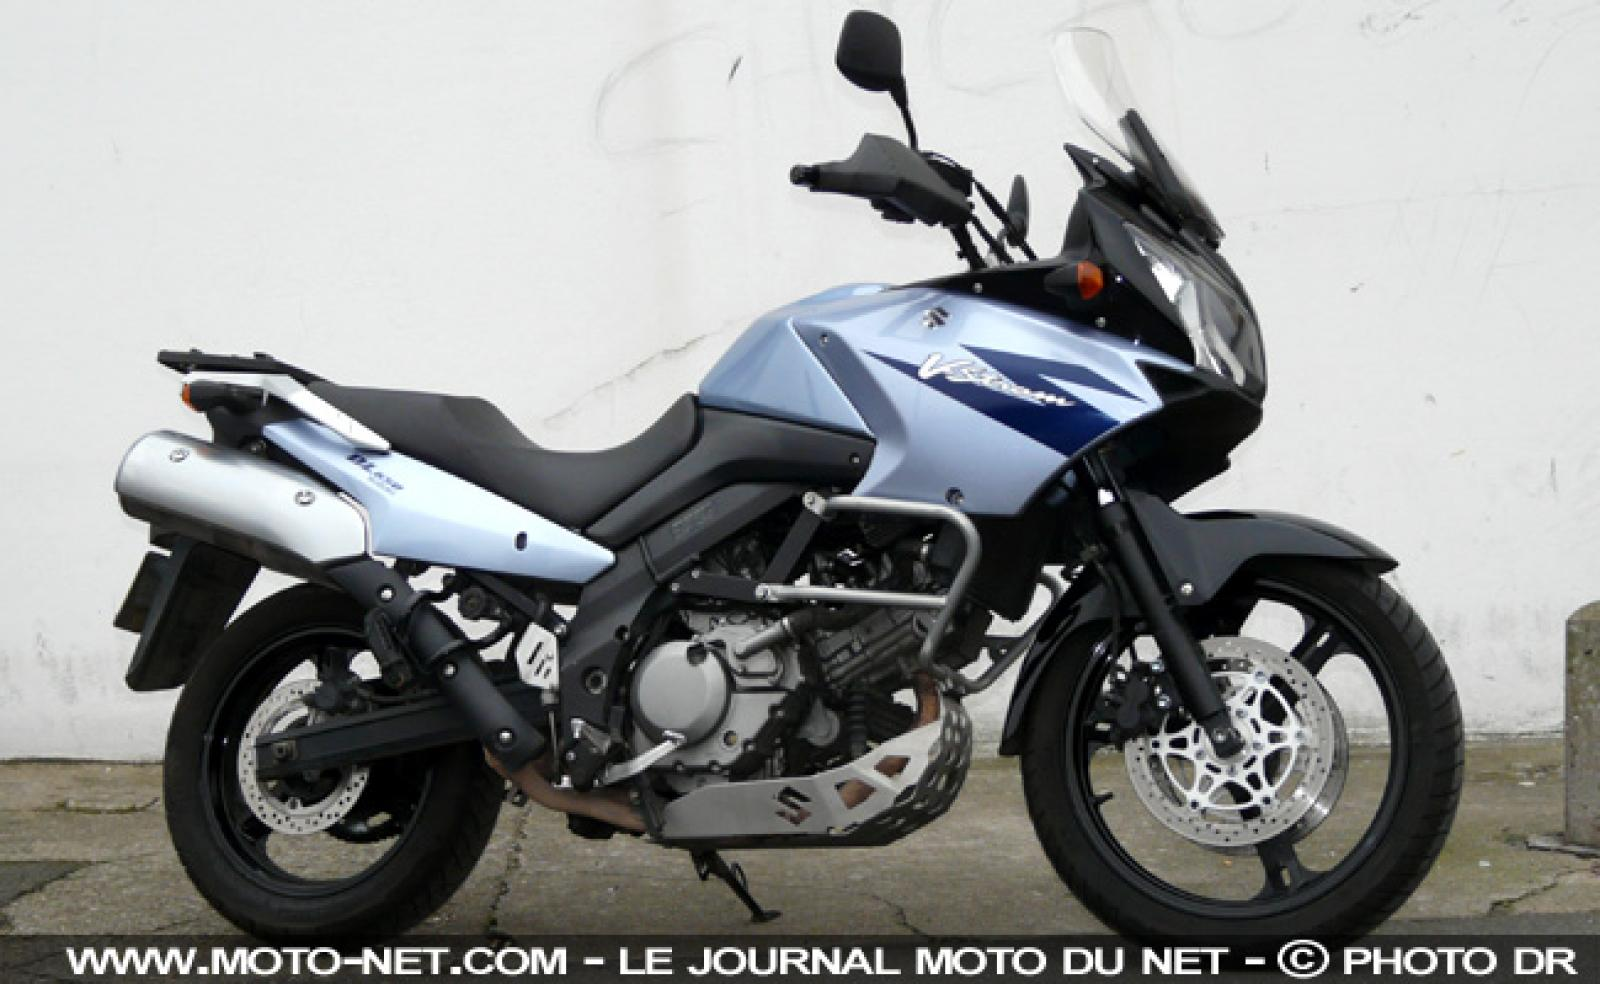 2006 suzuki v strom 650 moto zombdrive com. Black Bedroom Furniture Sets. Home Design Ideas